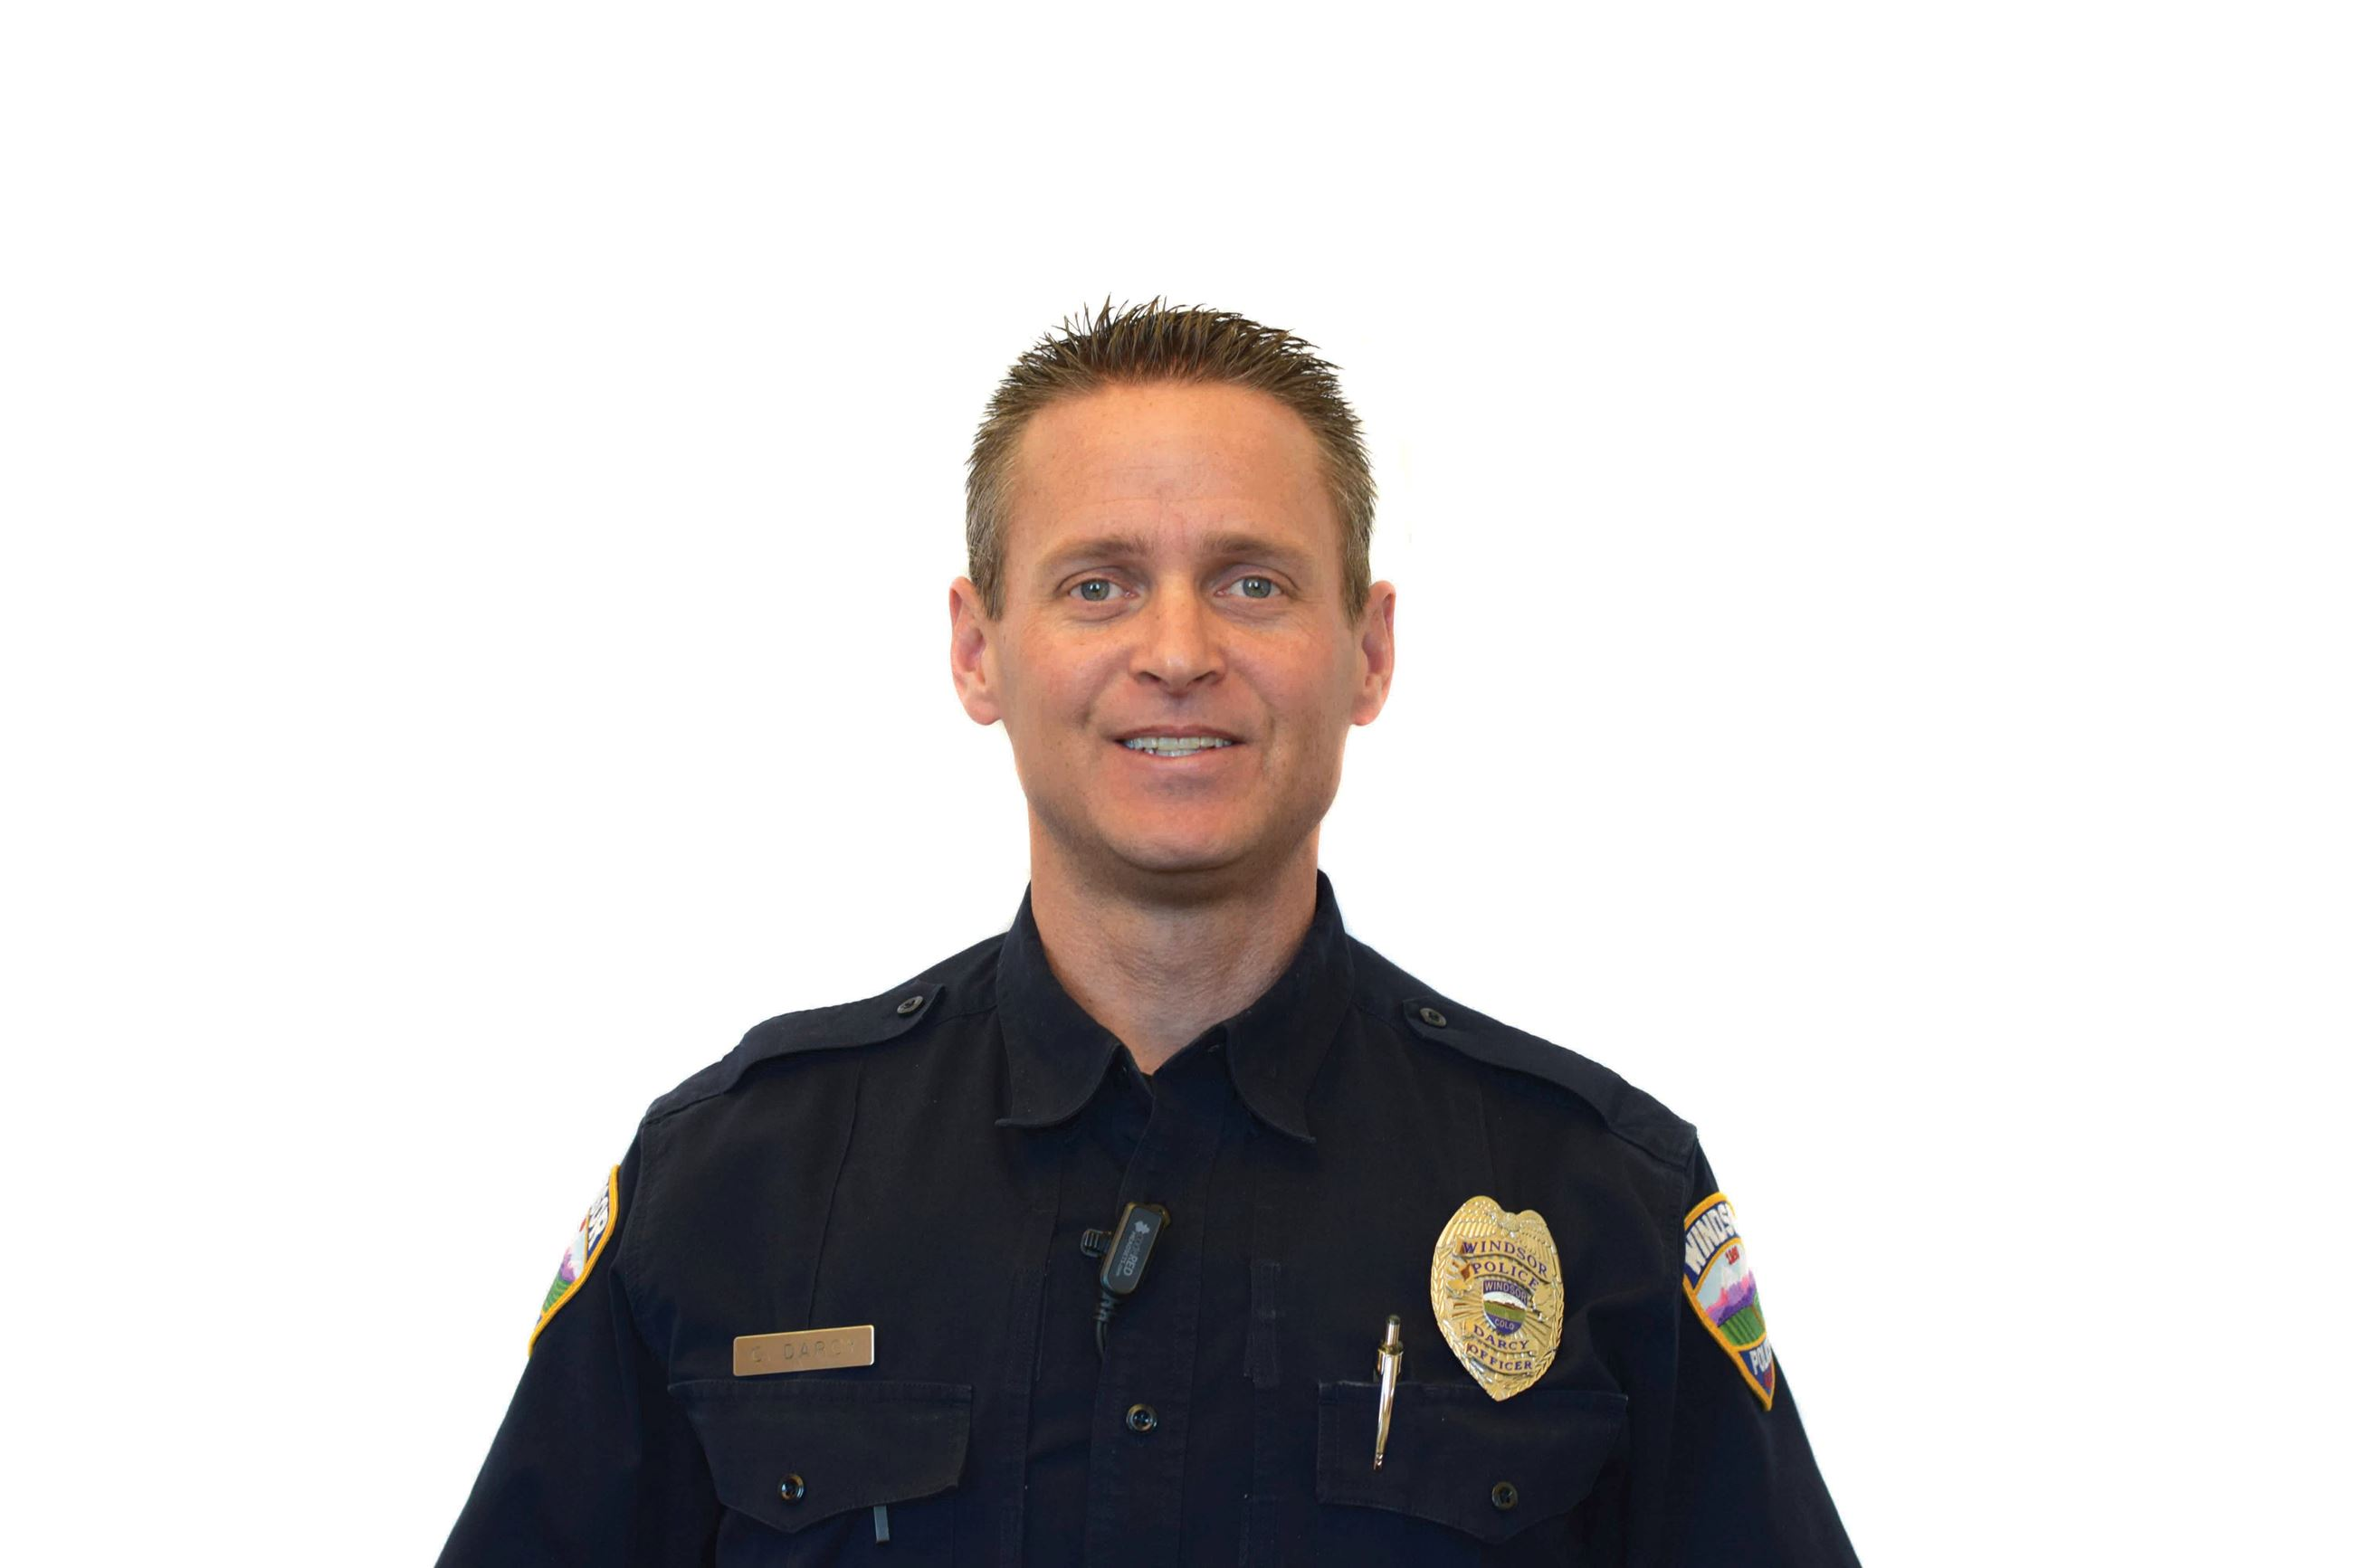 Officer Chris Darcy